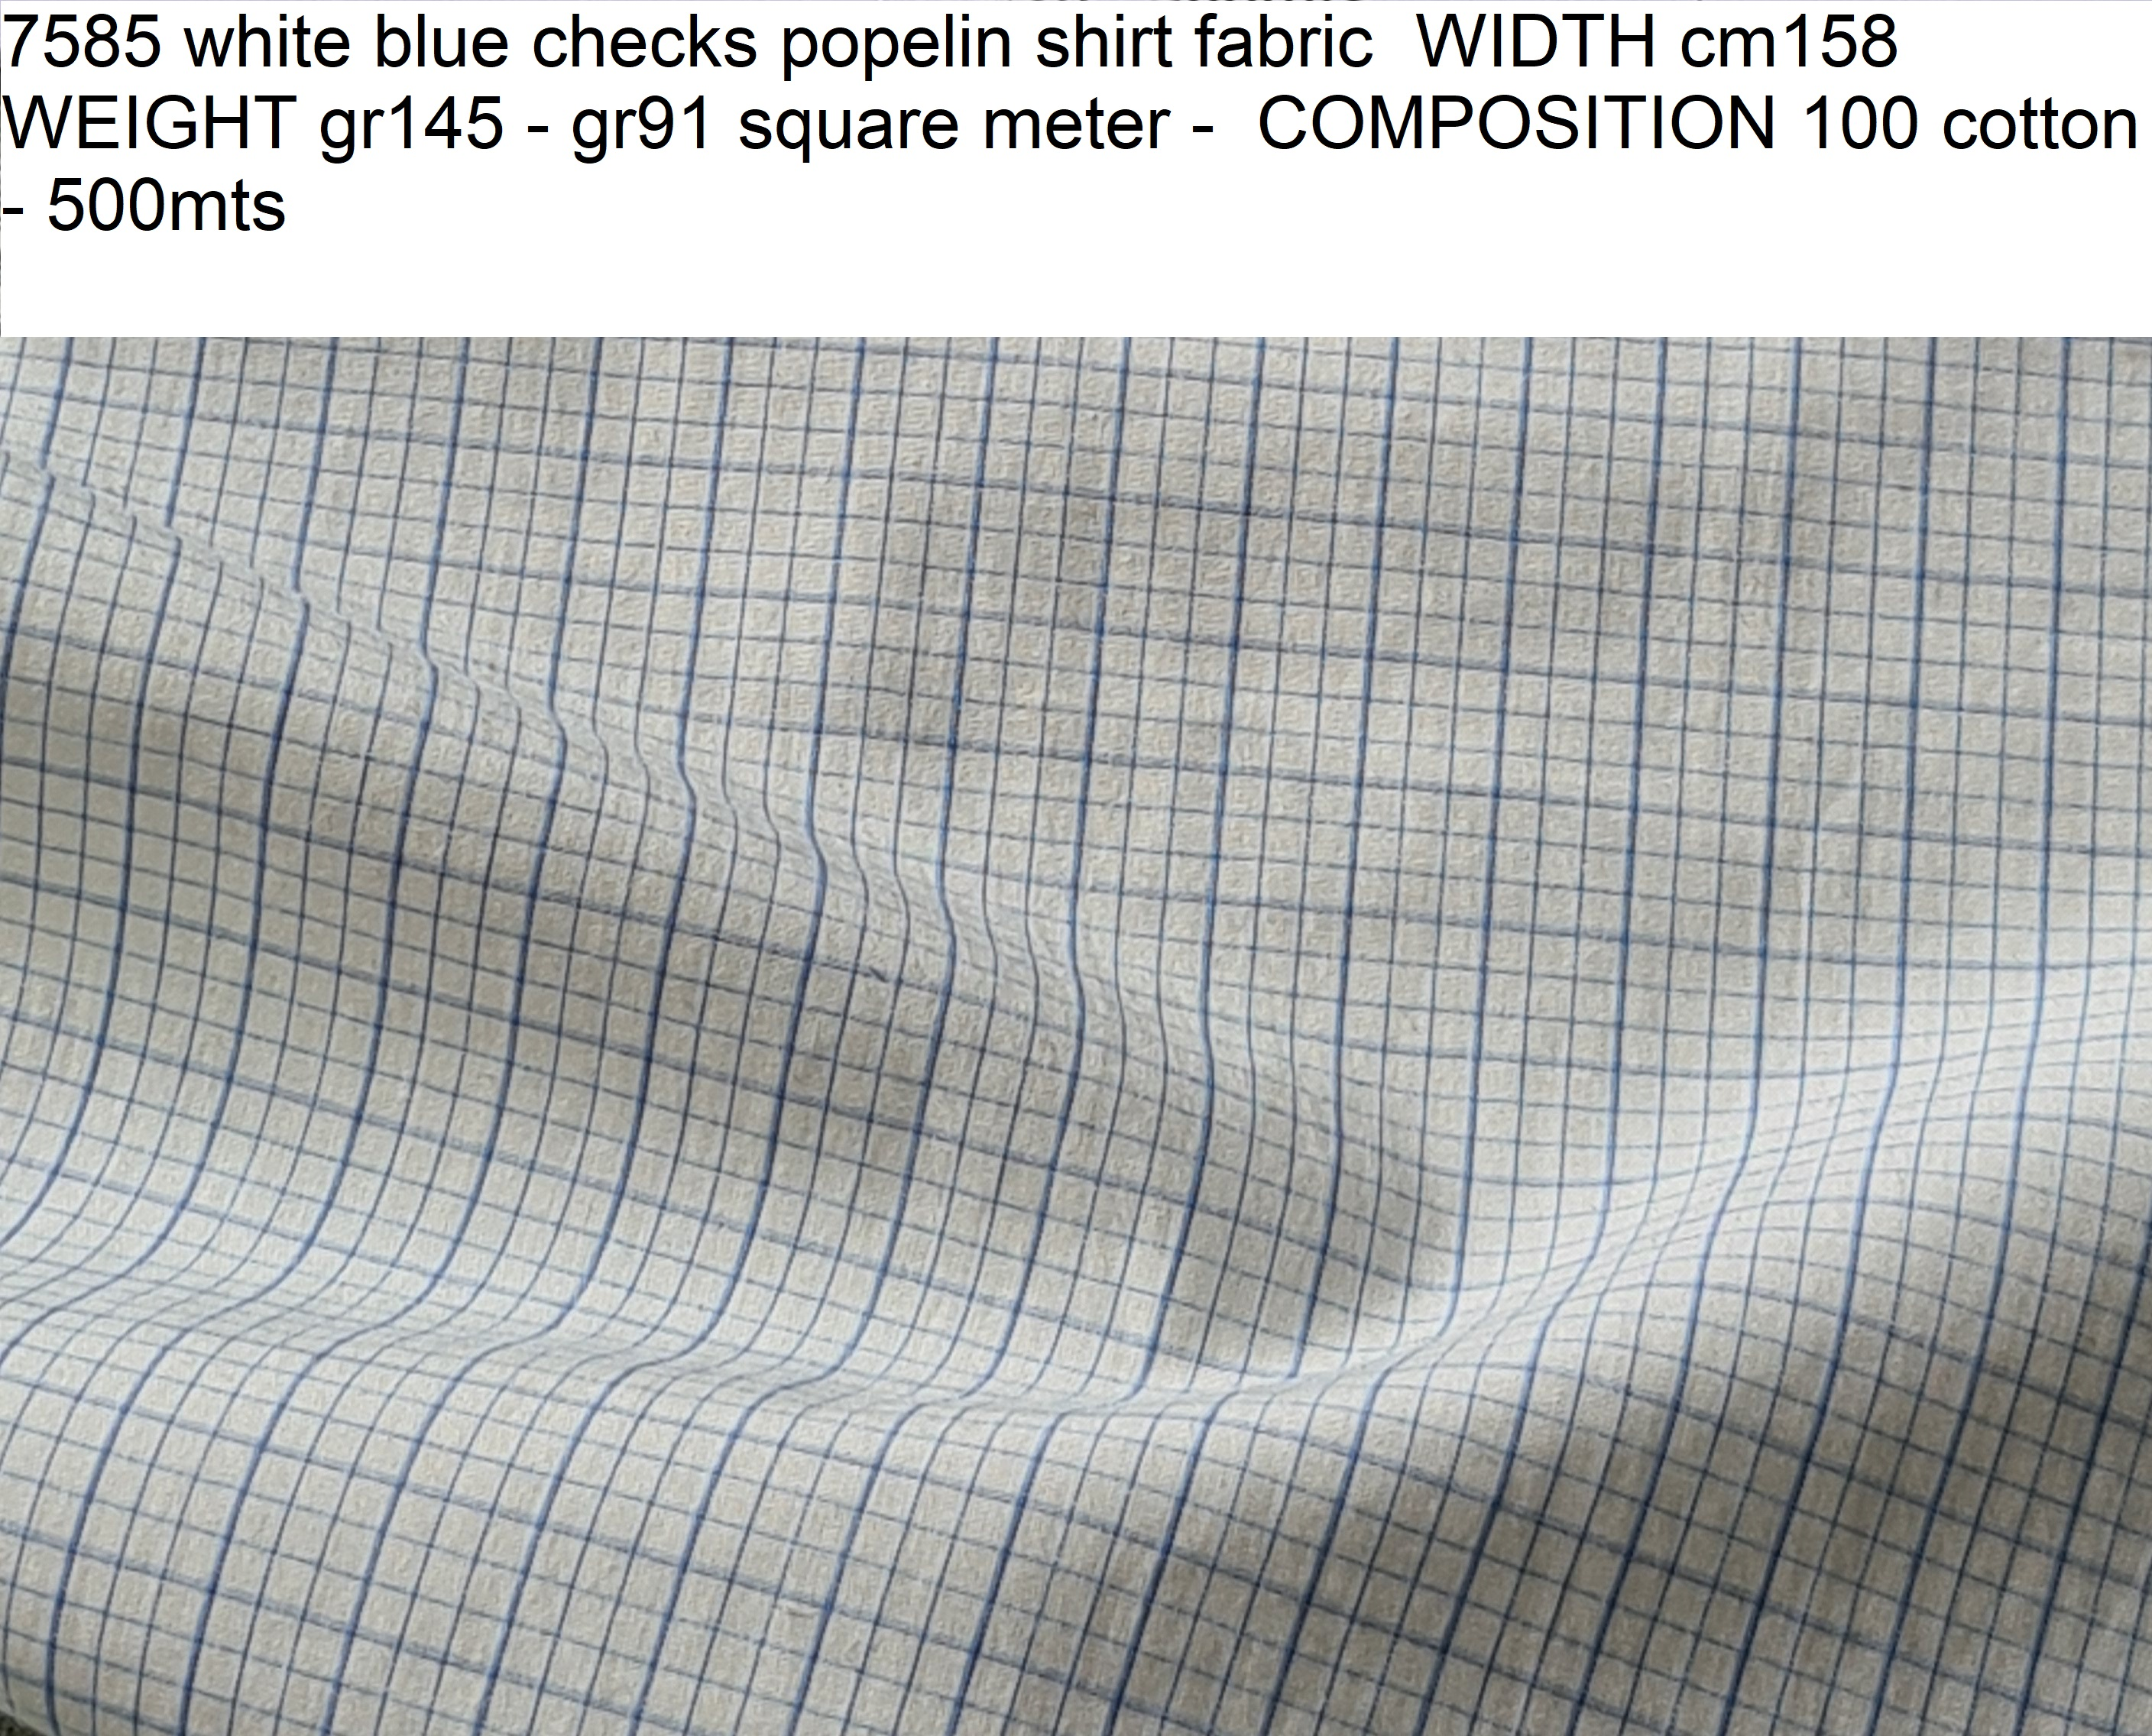 7585 white blue checks popelin shirt fabric WIDTH cm158 WEIGHT gr145 - gr91 square meter - COMPOSITION 100 cotton - 500mts